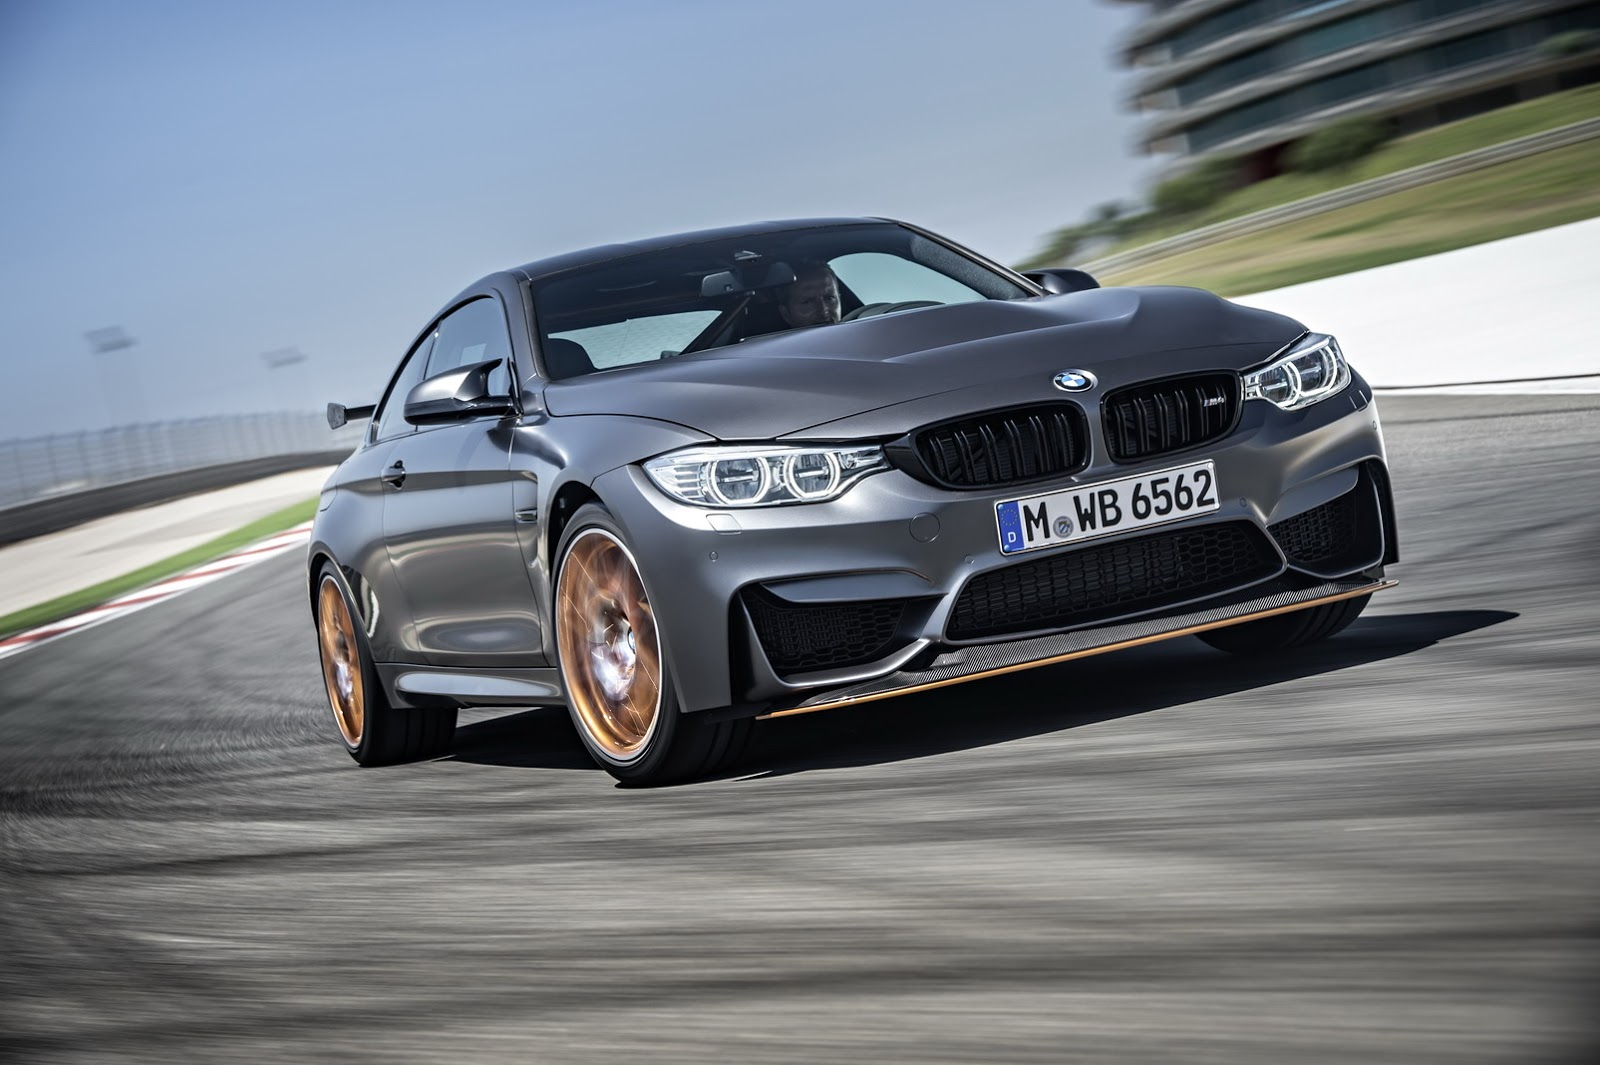 Wonderful image of BMW Drops New Gallery Of M4 GTS And Its E30 E36 And E46 M3  with #456386 color and 1600x1065 pixels